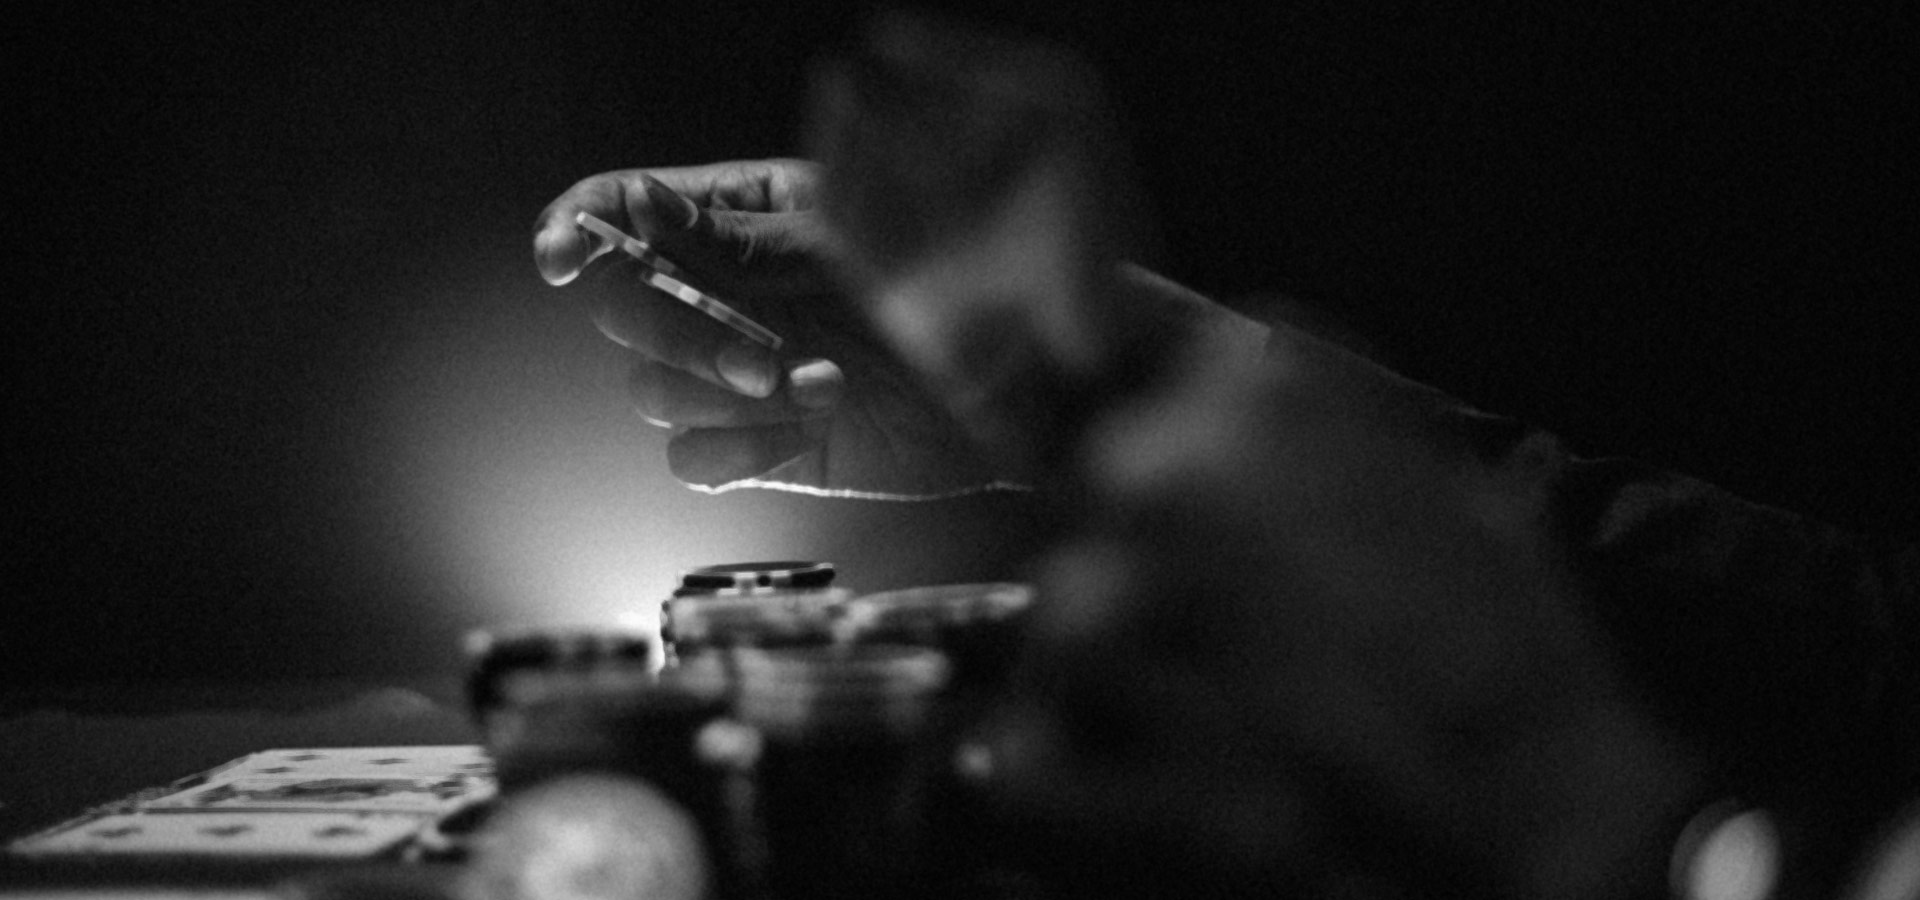 Black and white grainy photo of hand holding chips at card table